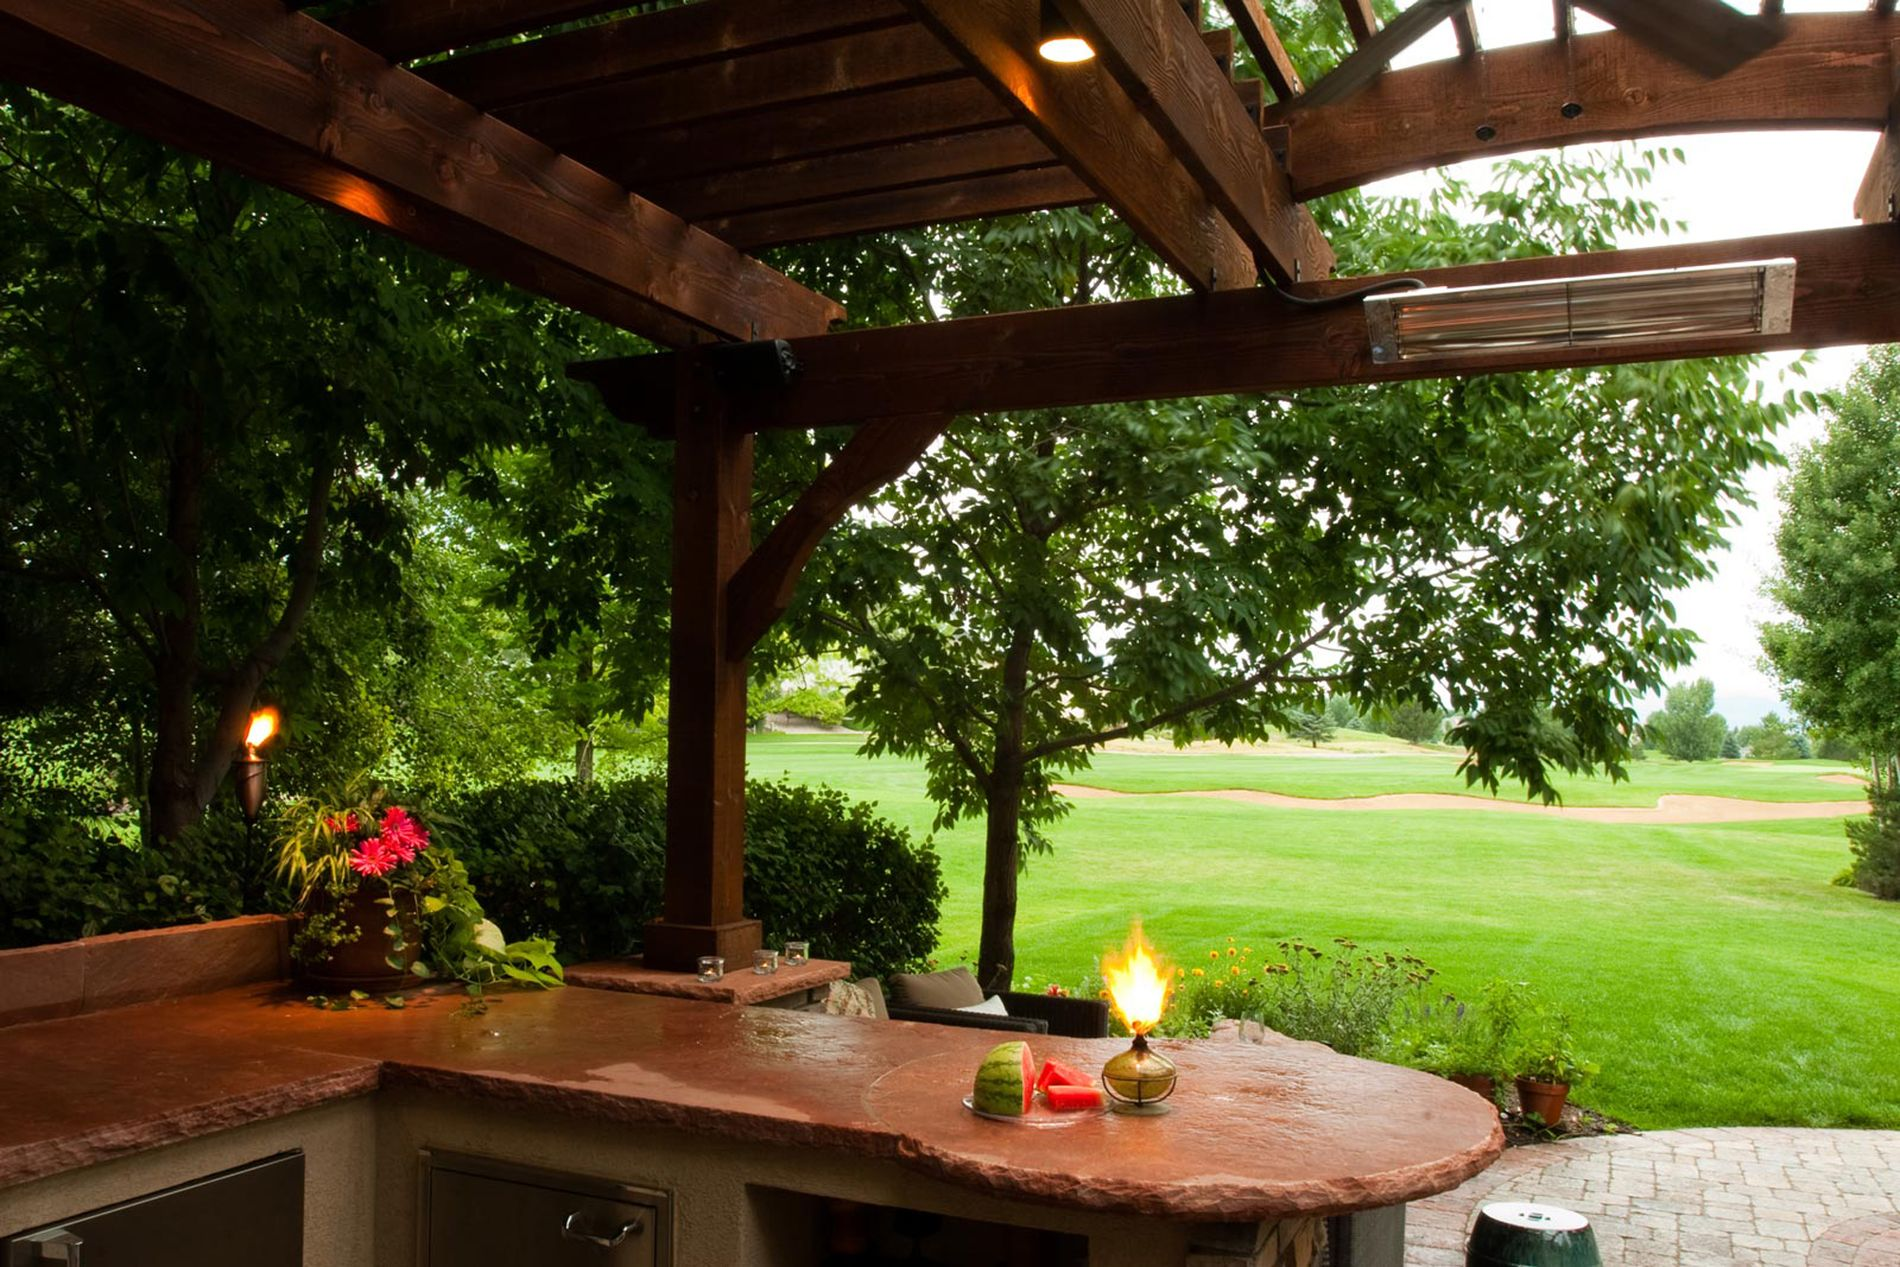 Outdoor Kitchen on the Golf Course